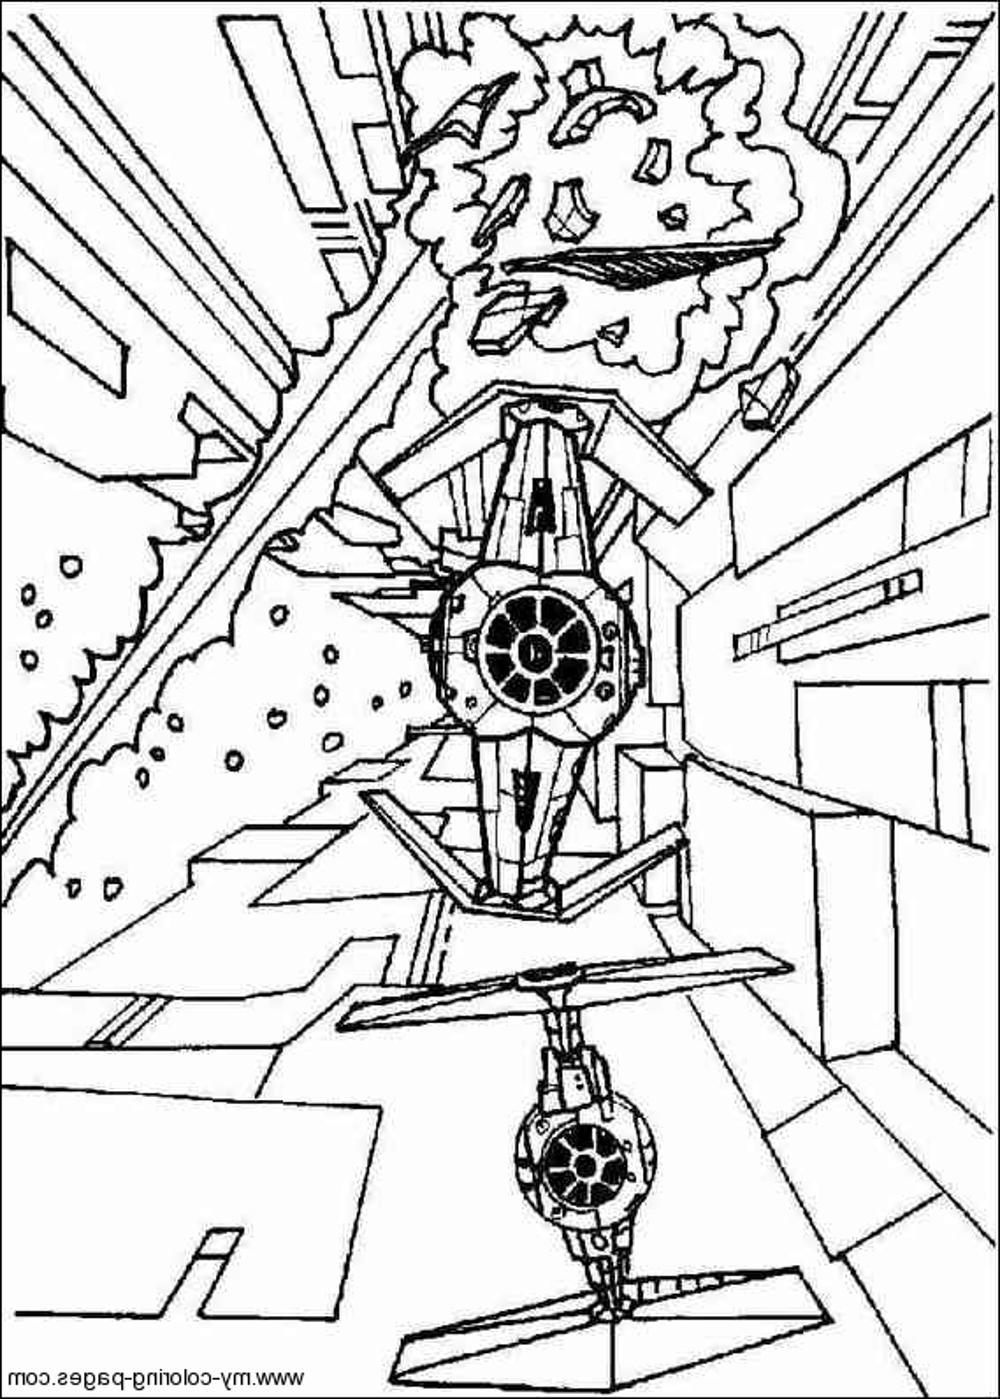 free coloring pages and star wars | lego-star-wars-coloring-pages-free | | BestAppsForKids.com